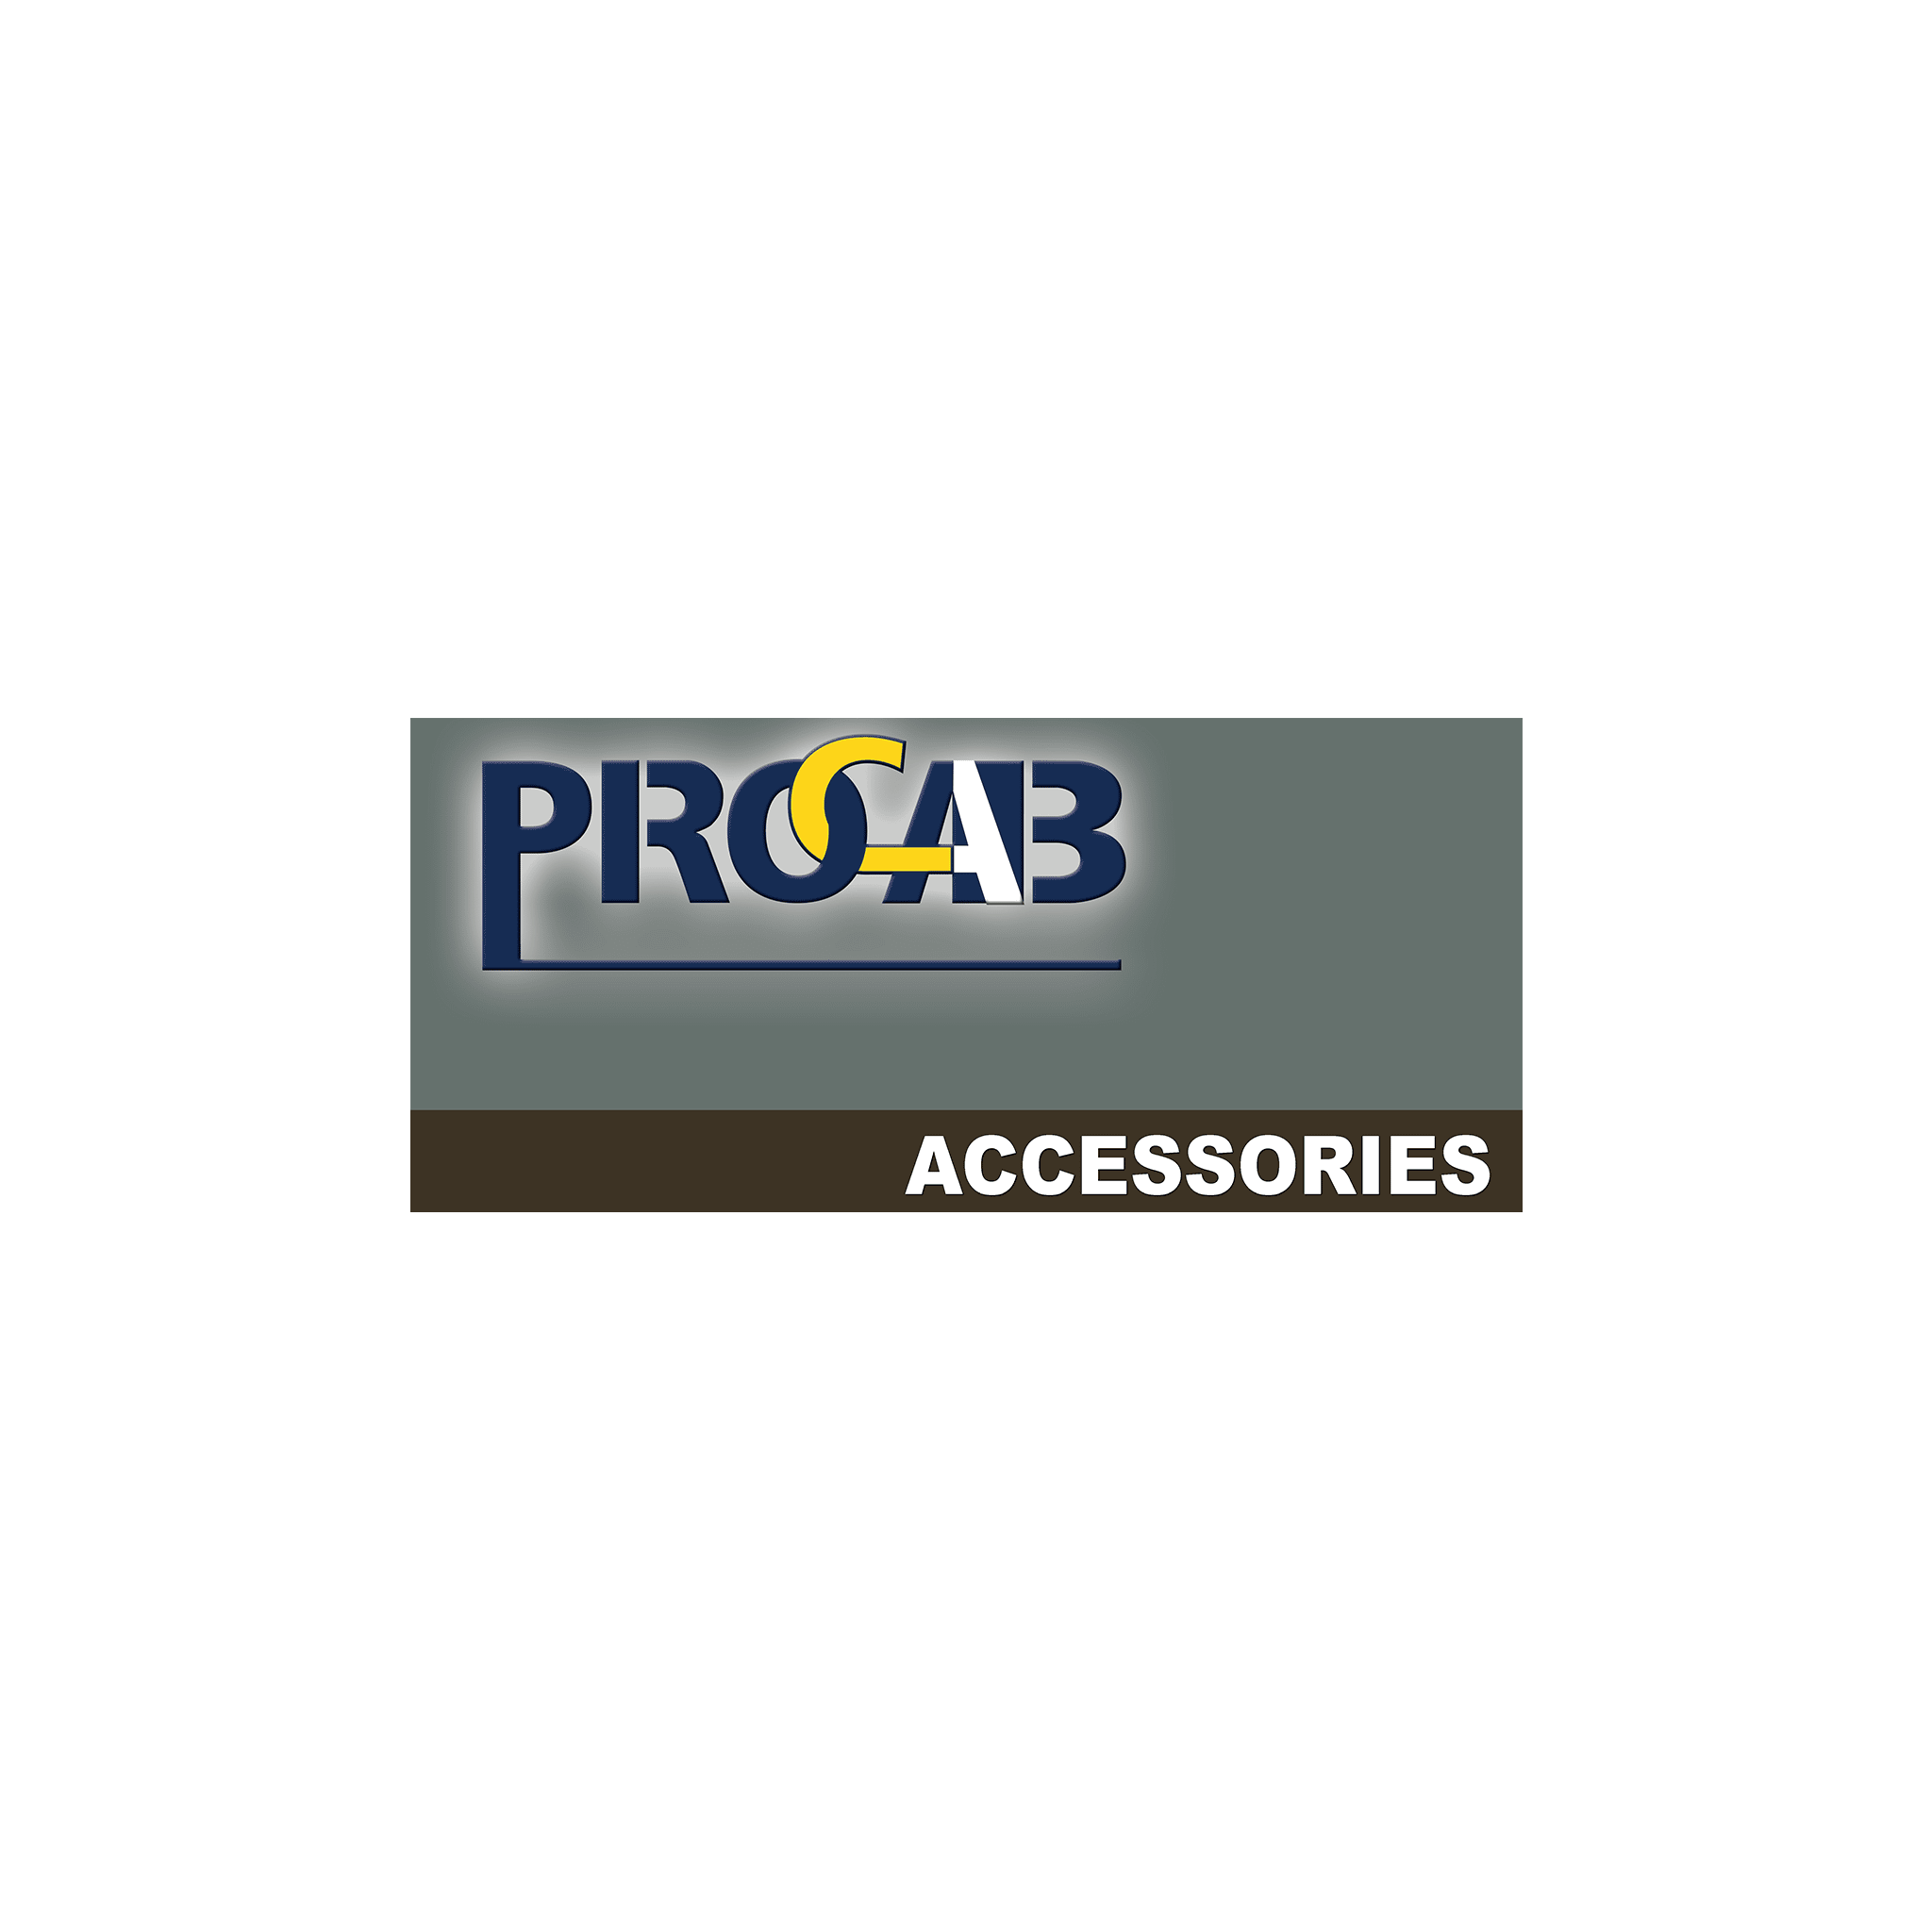 PROMORD240546047 - Display stand rd4000 - PROCAB - accessories display 45 cm